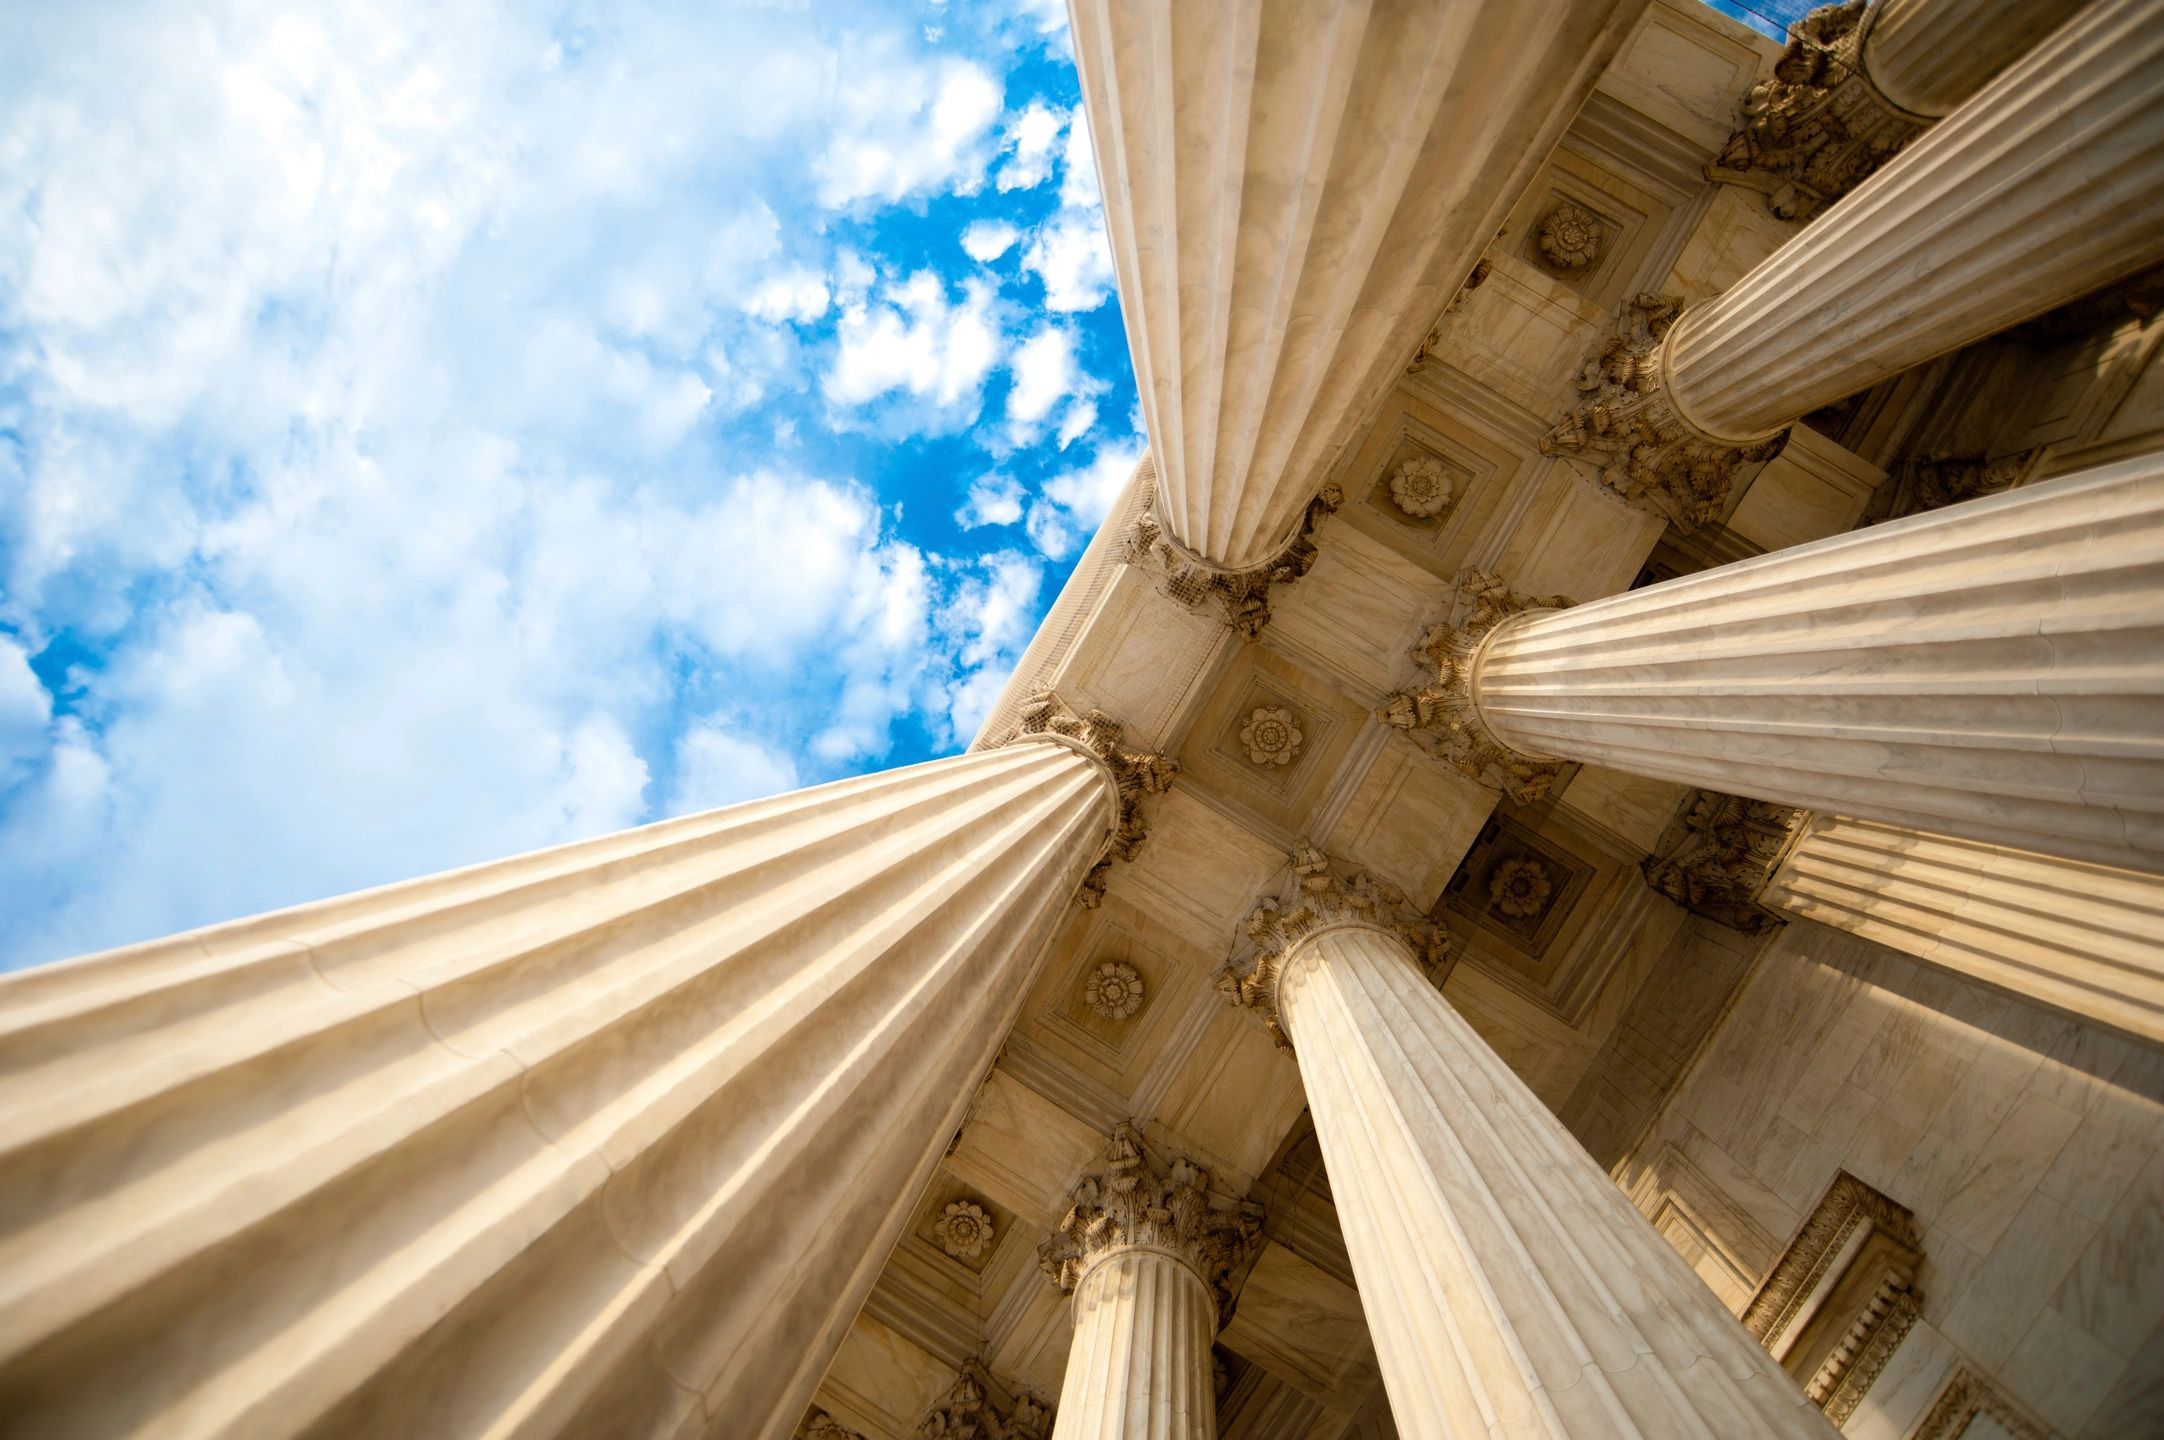 pillars and blue sky with clouds